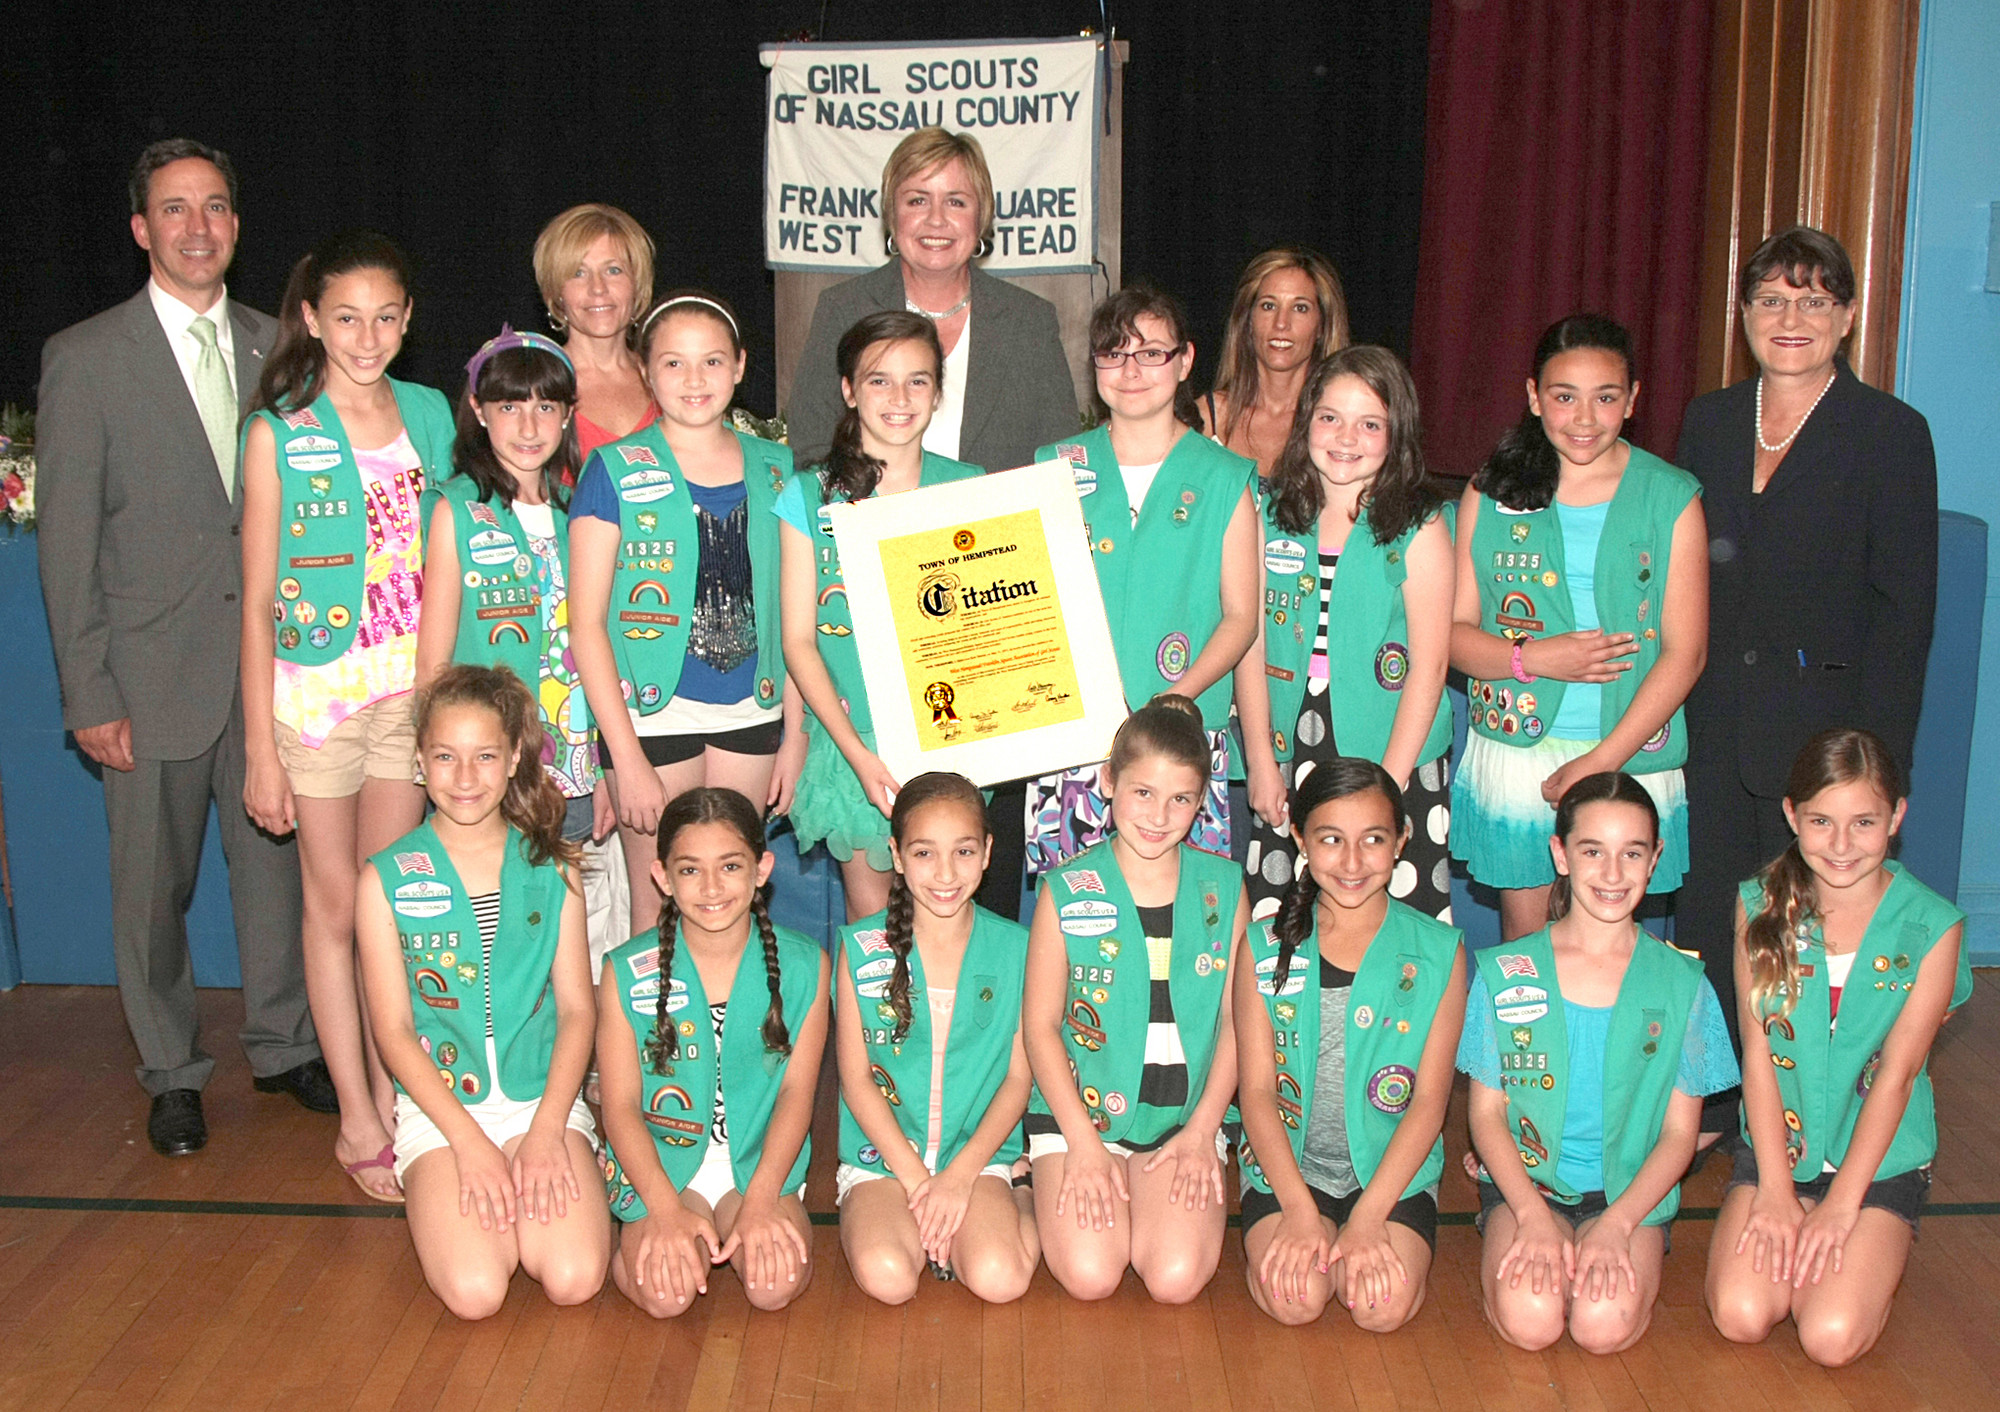 New York State Senator Jack Martins, Nassau County Clerk Maureen O'Connell, Town of Hempstead Supervisor Kate Murray congratulate Troop 1011 with the Bronze Award alongside Leader Rose Campos.